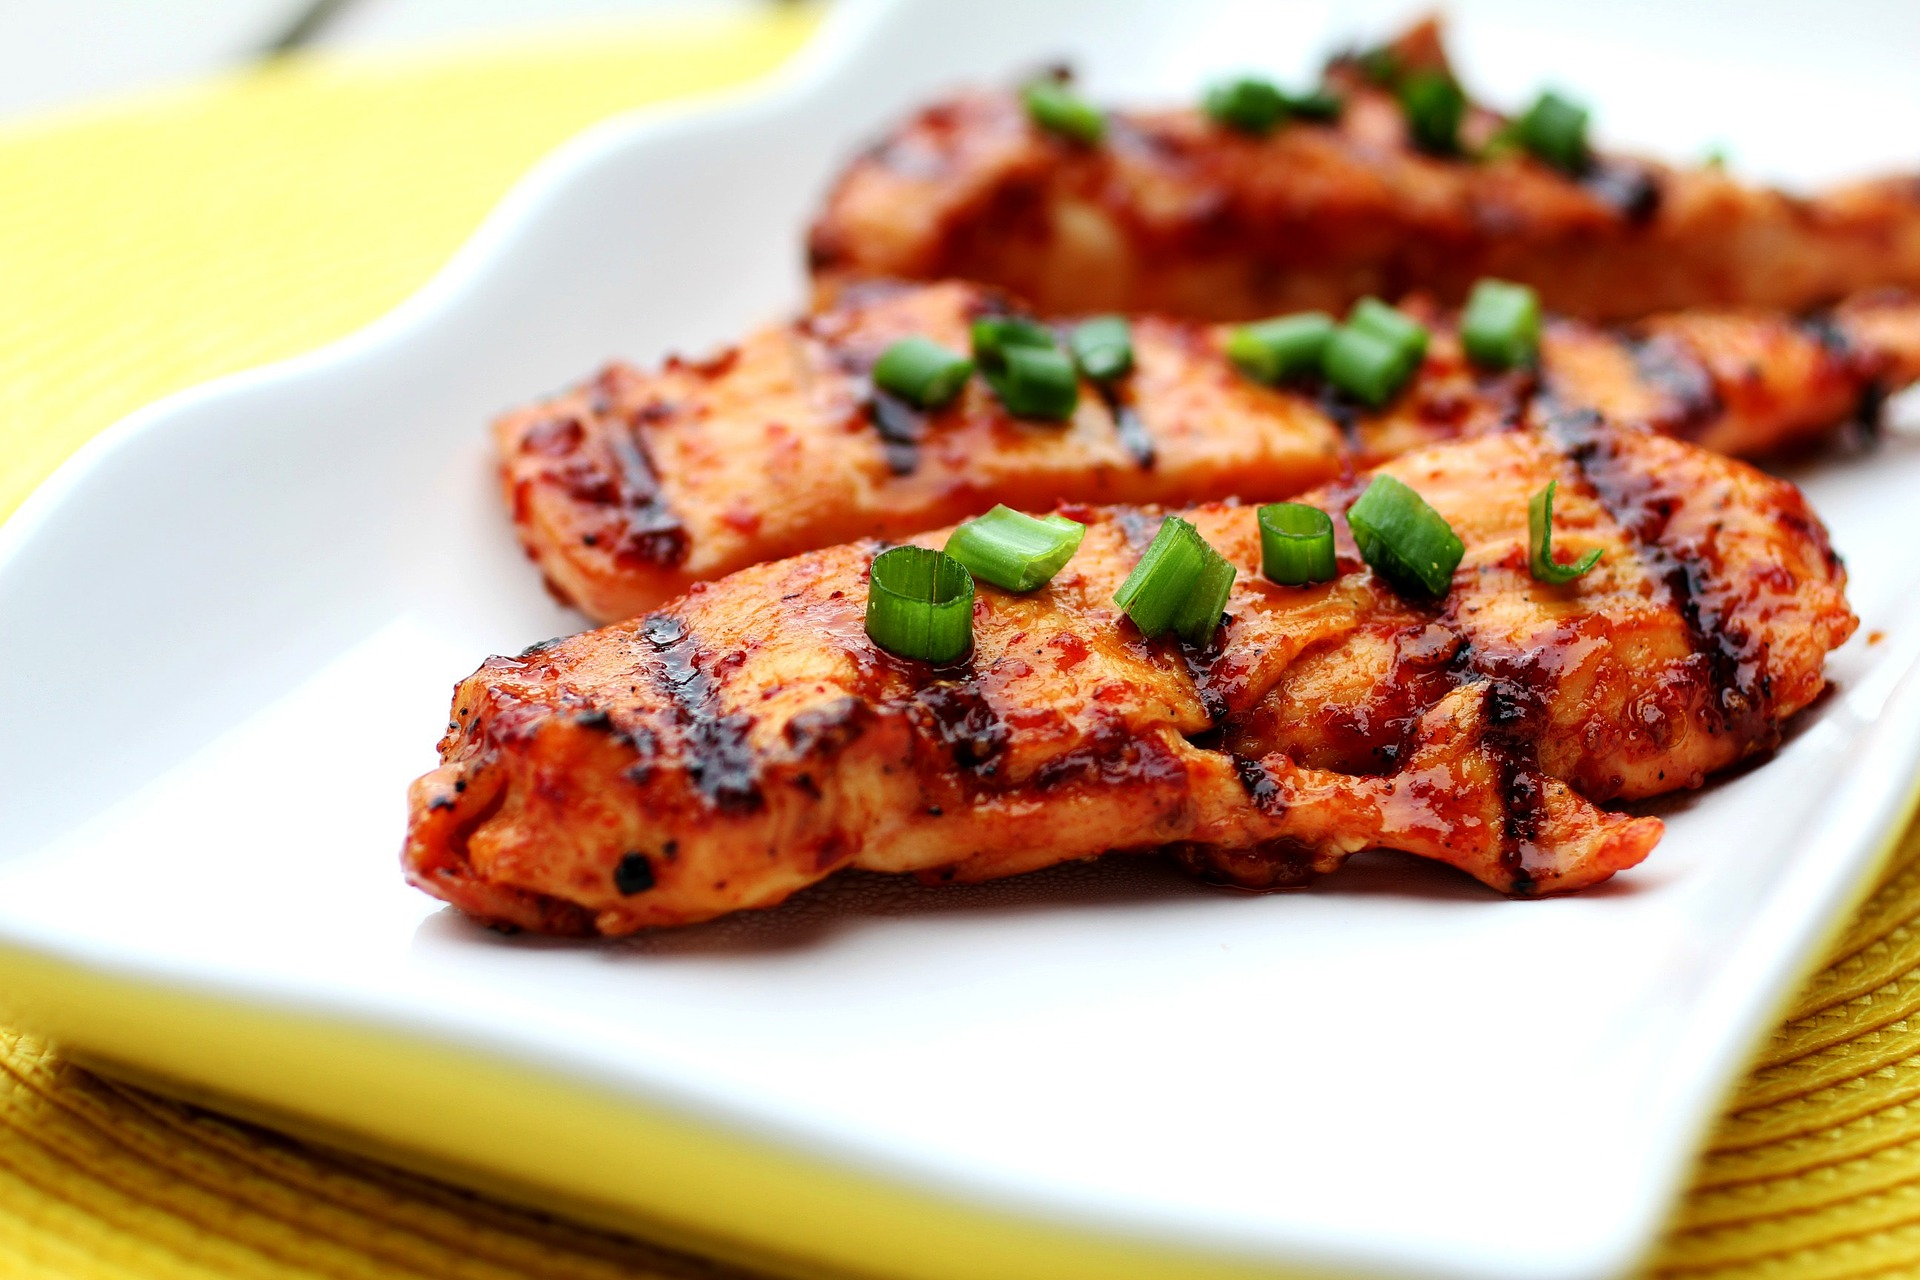 Grilled Spicy, Tangy Chicken